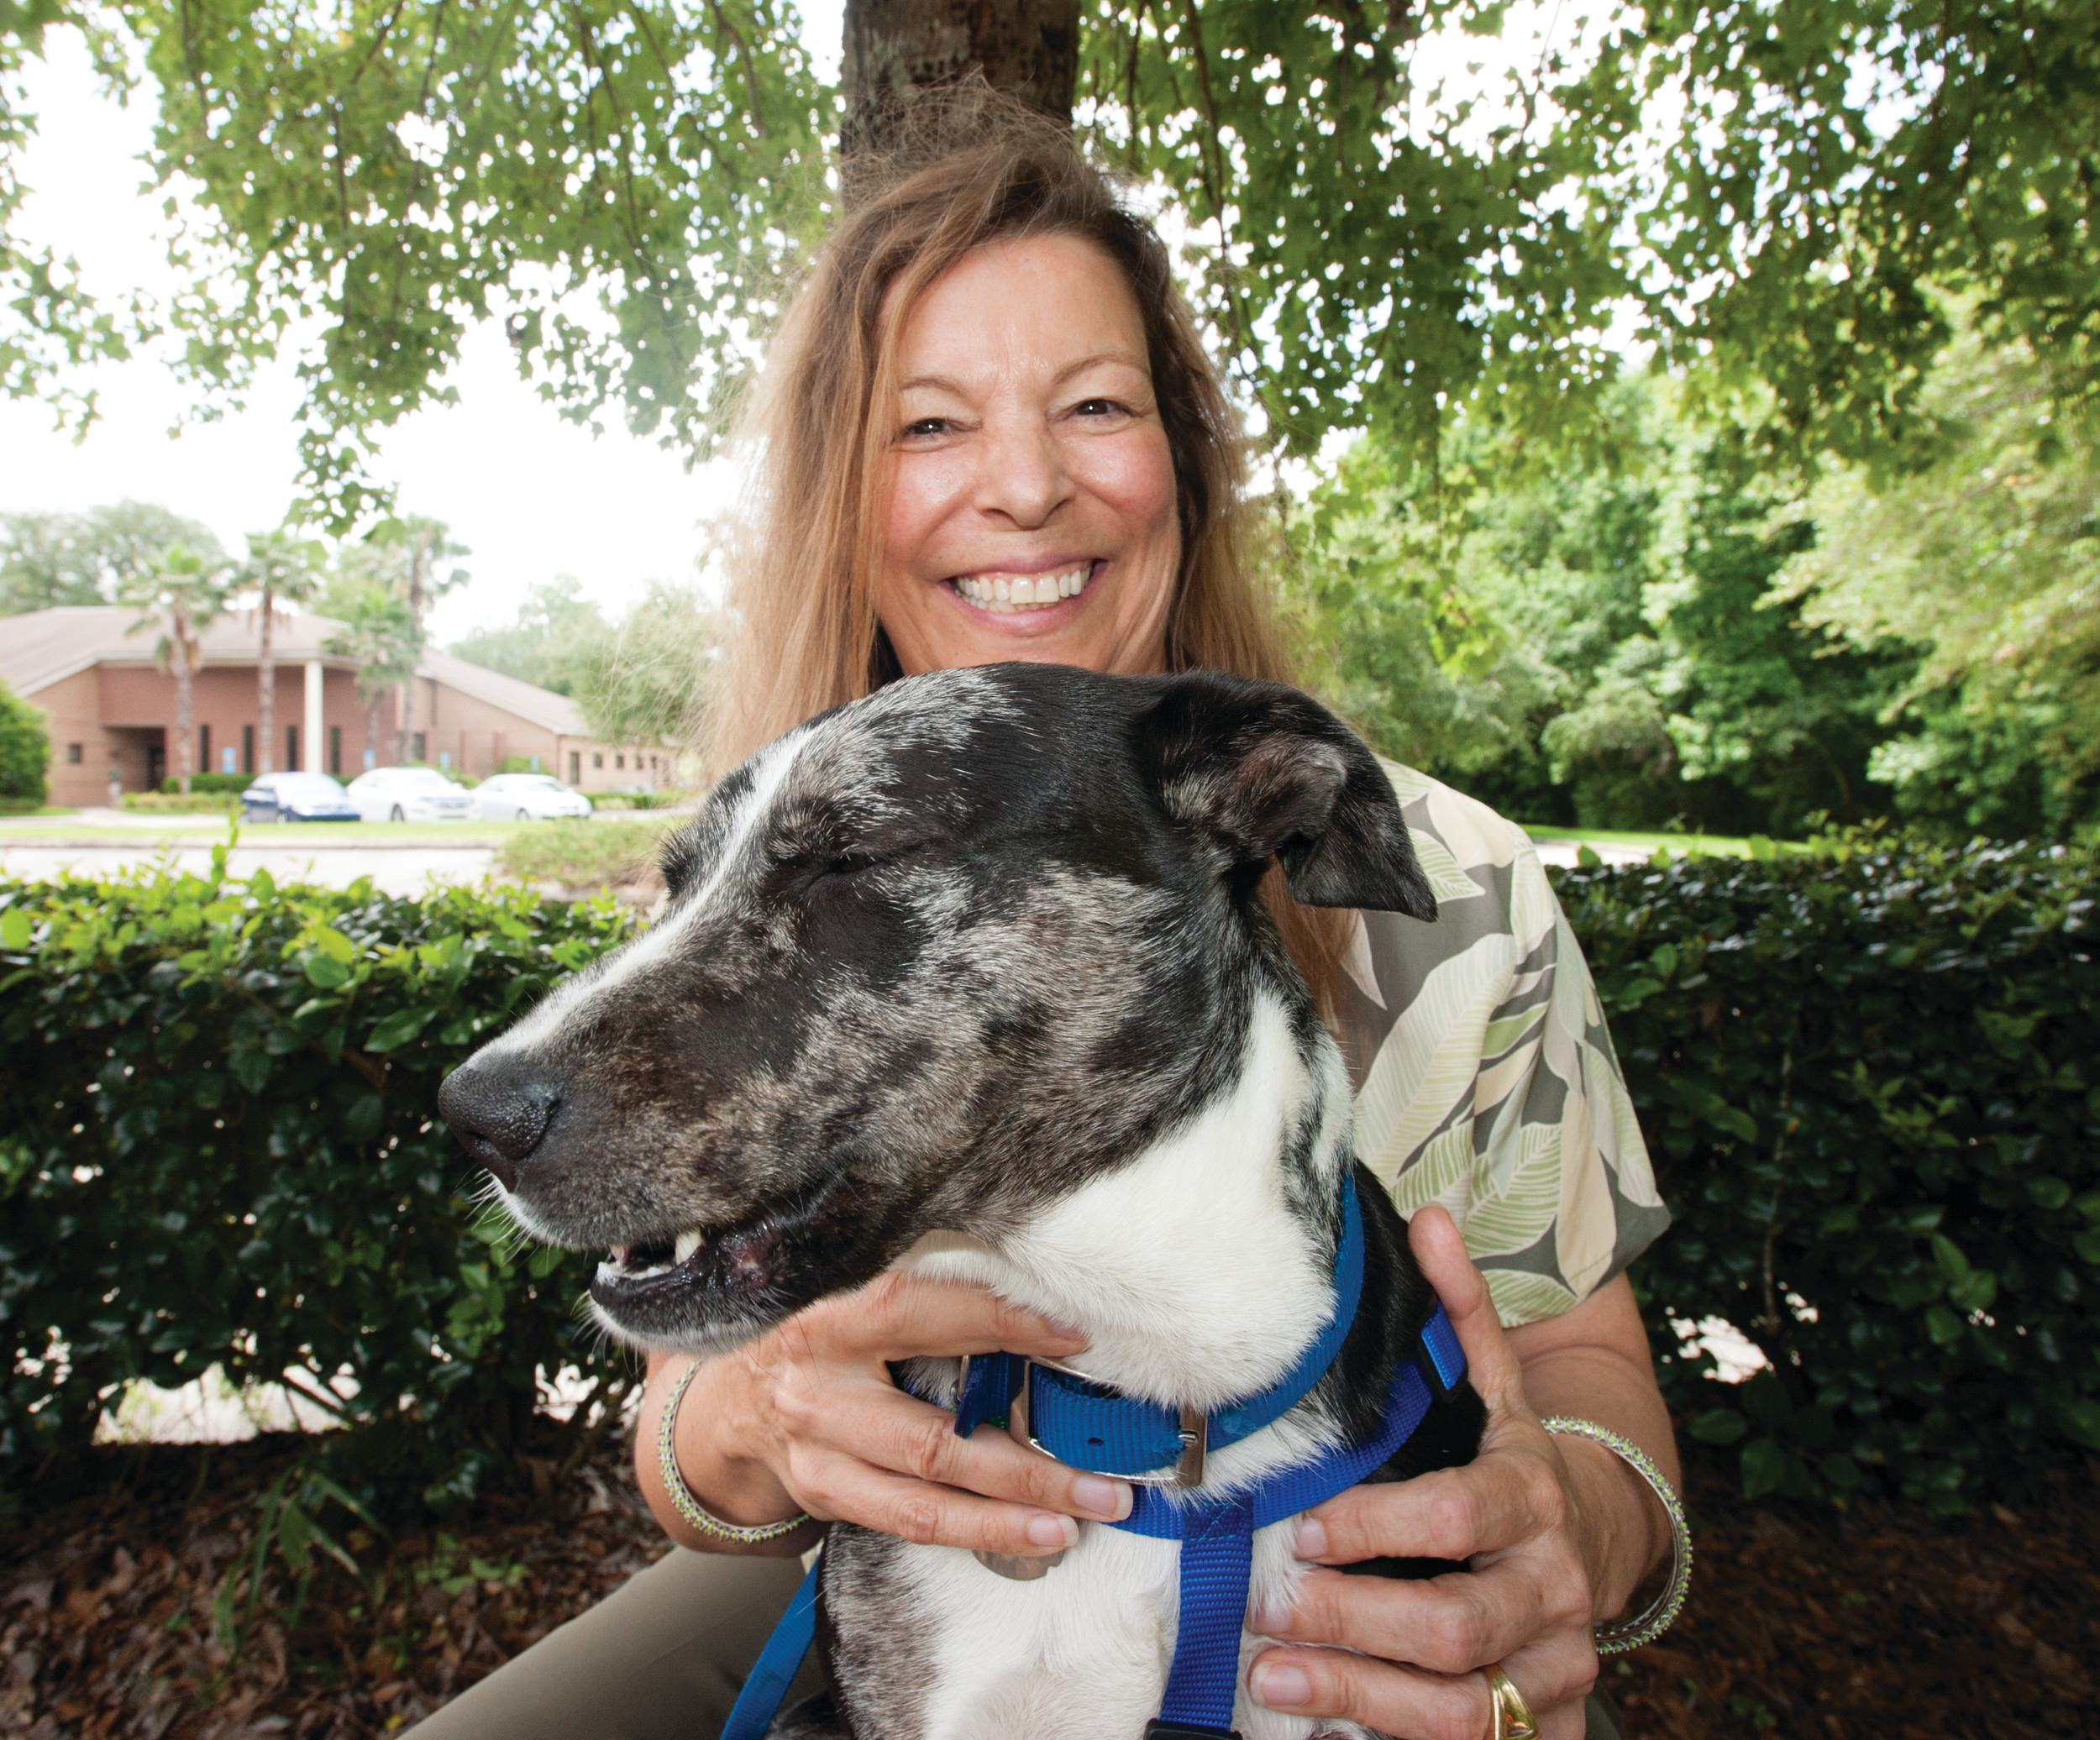 Margo Moehring adopted her dog, Astro, at the city of Jacksonville's Animal Care & Protective Services shelter on the edge of Downtown.